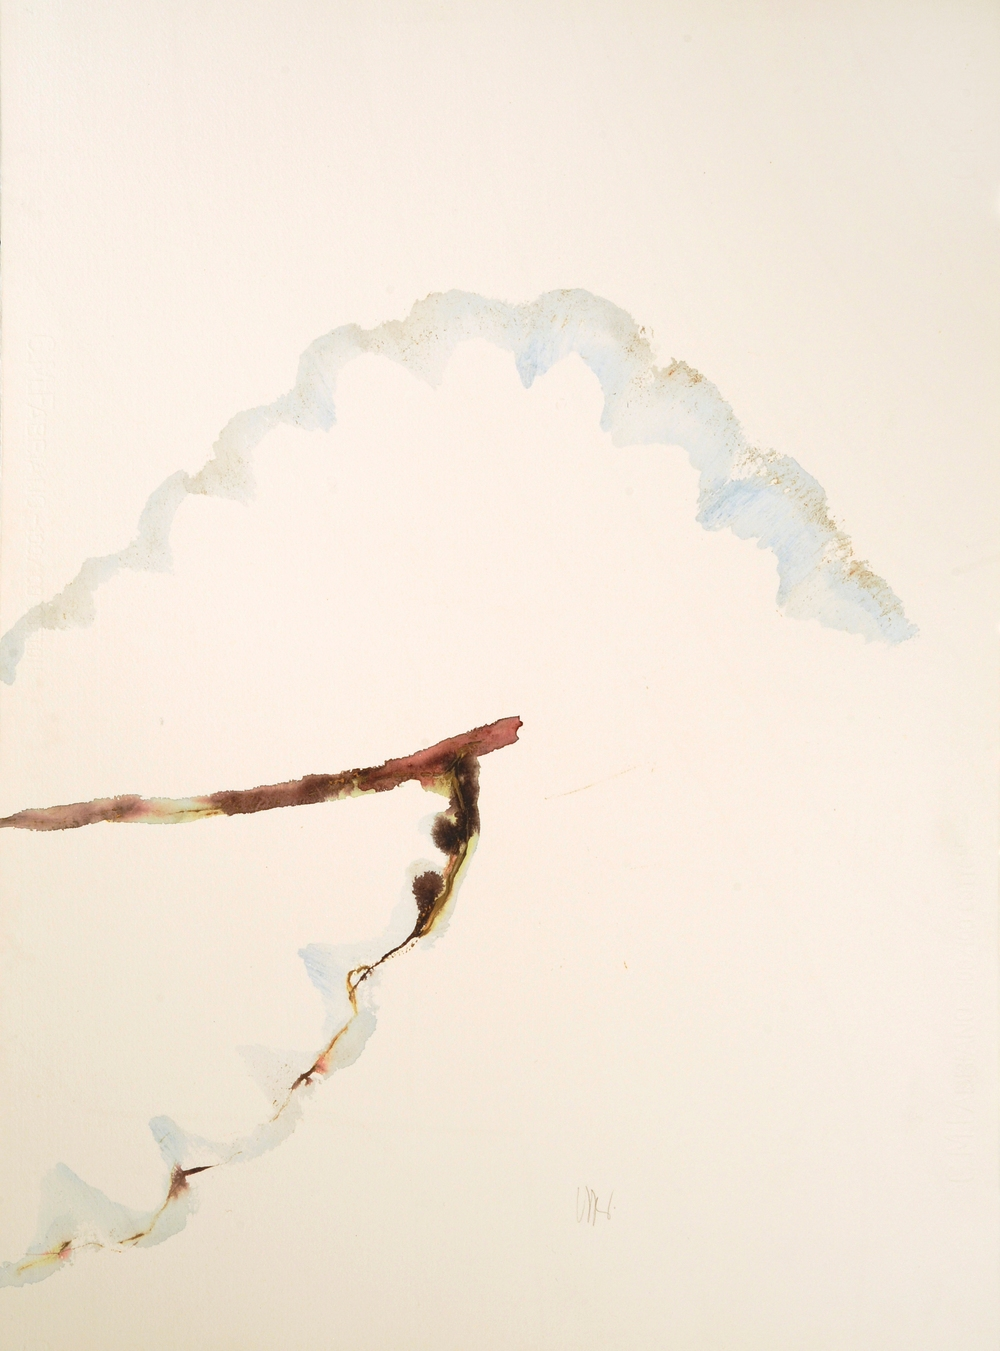 "senza titolo, dalla serie ""Signatura rerum"", 1992, acrilico su carta Fabriano, cm 76 x 57  untitled, from the series ""Signatura rerum"", 1992, acrylic on Fabriano paper, cm 76 x 57"